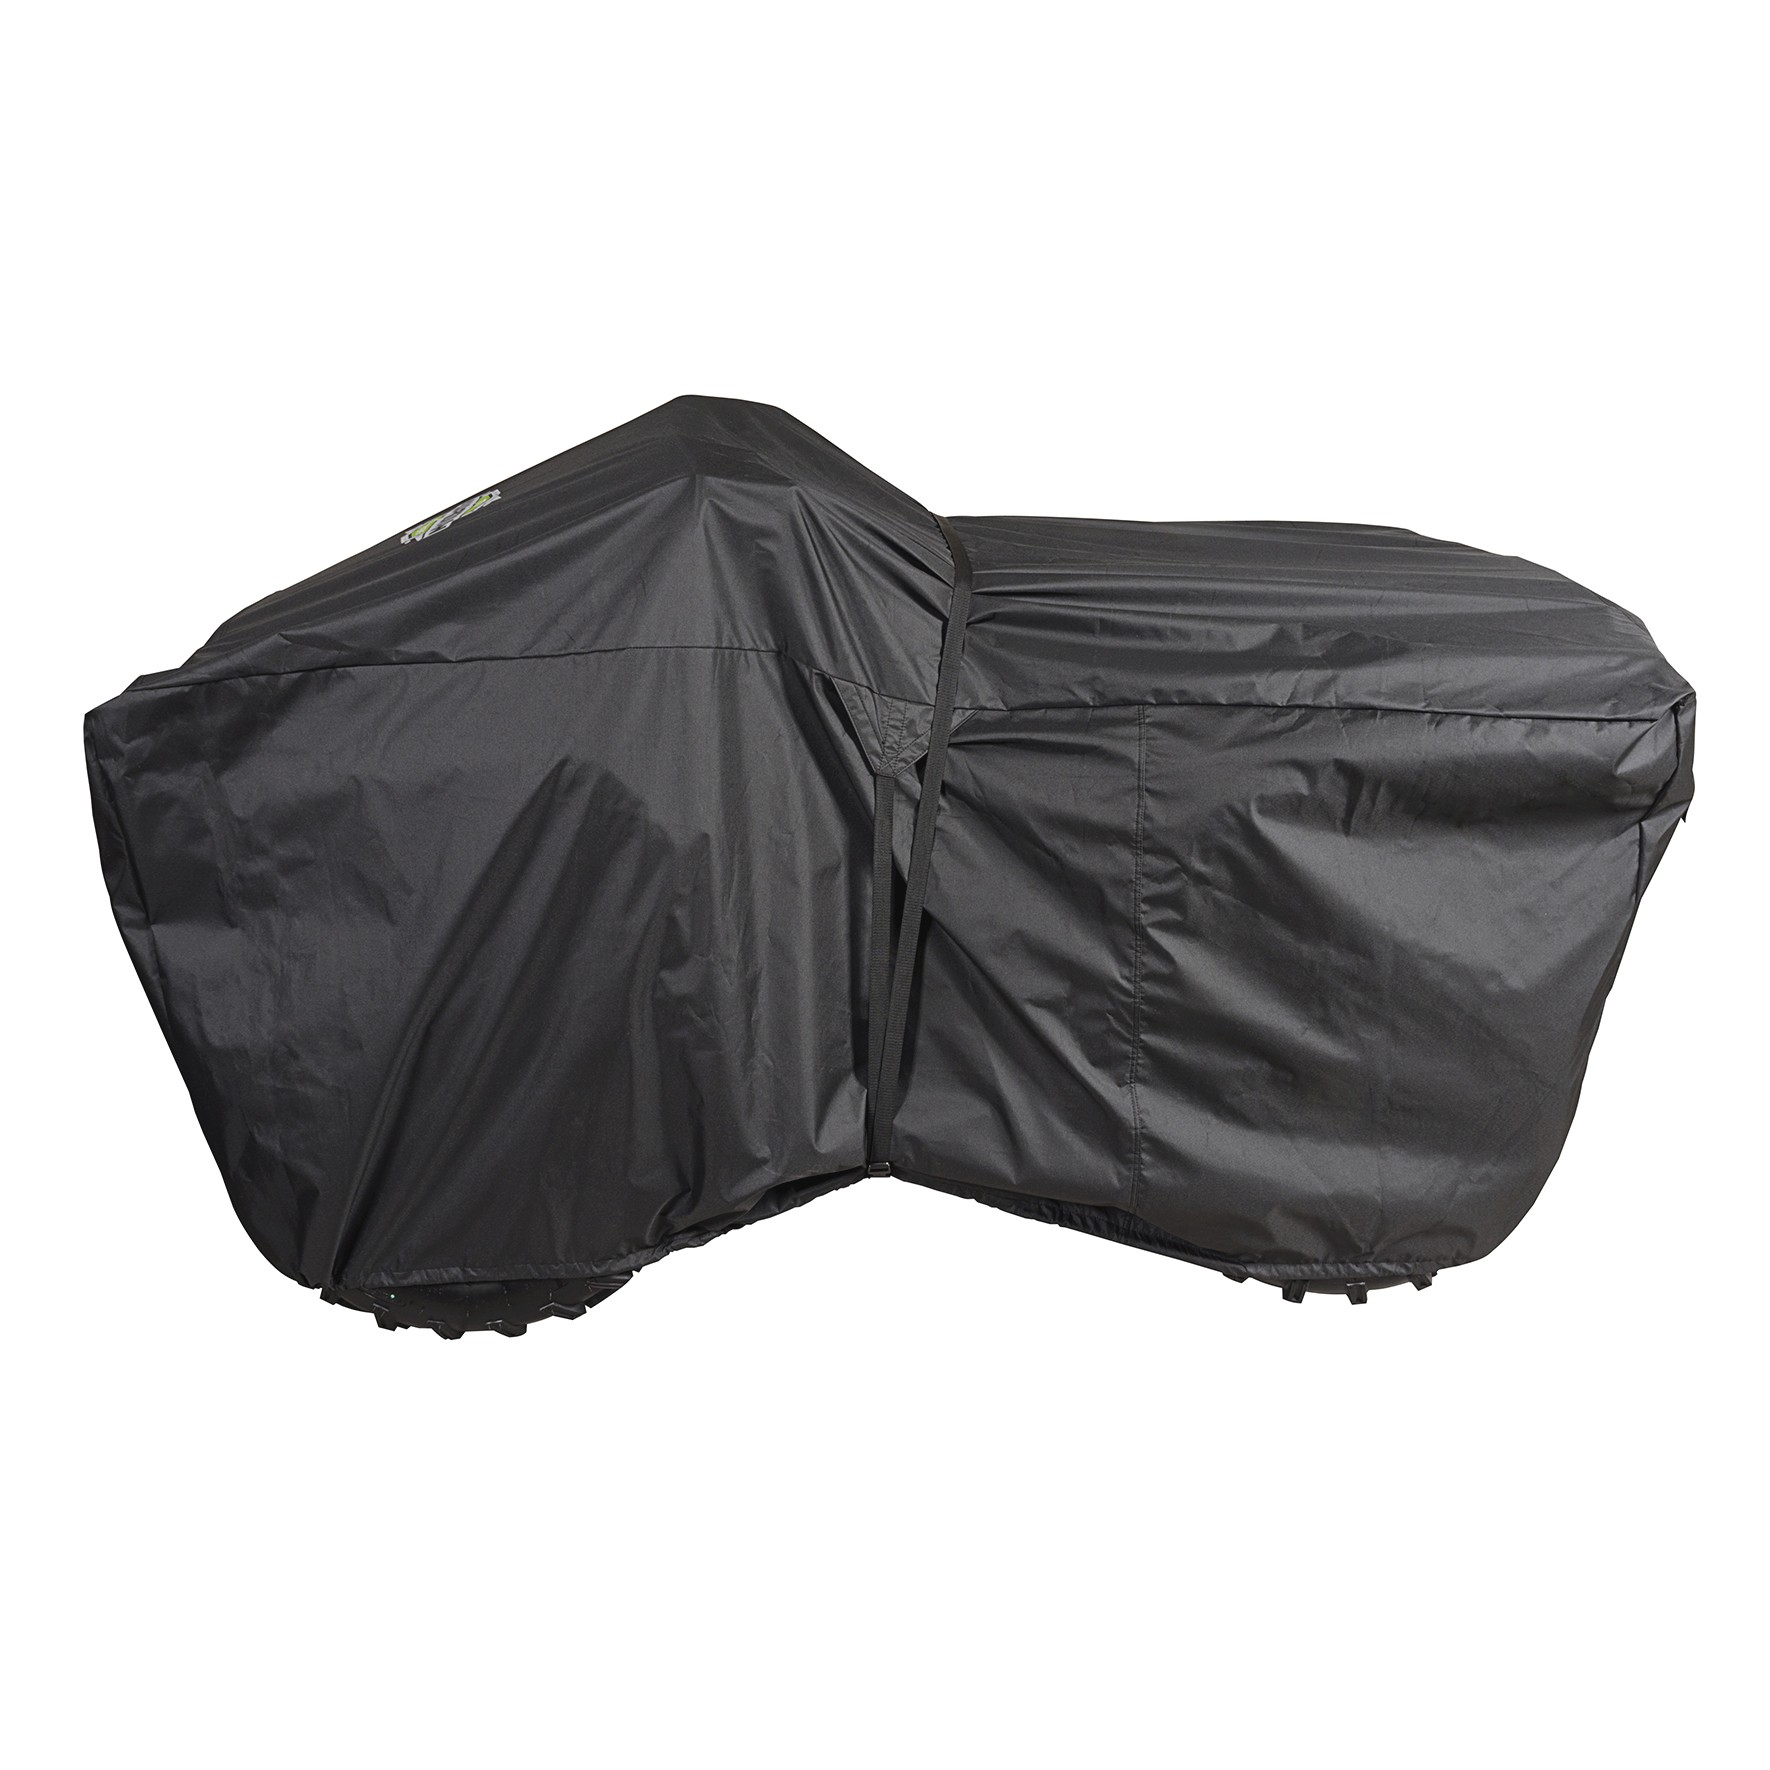 Dowco Guardian Heavy Duty ATV Cover